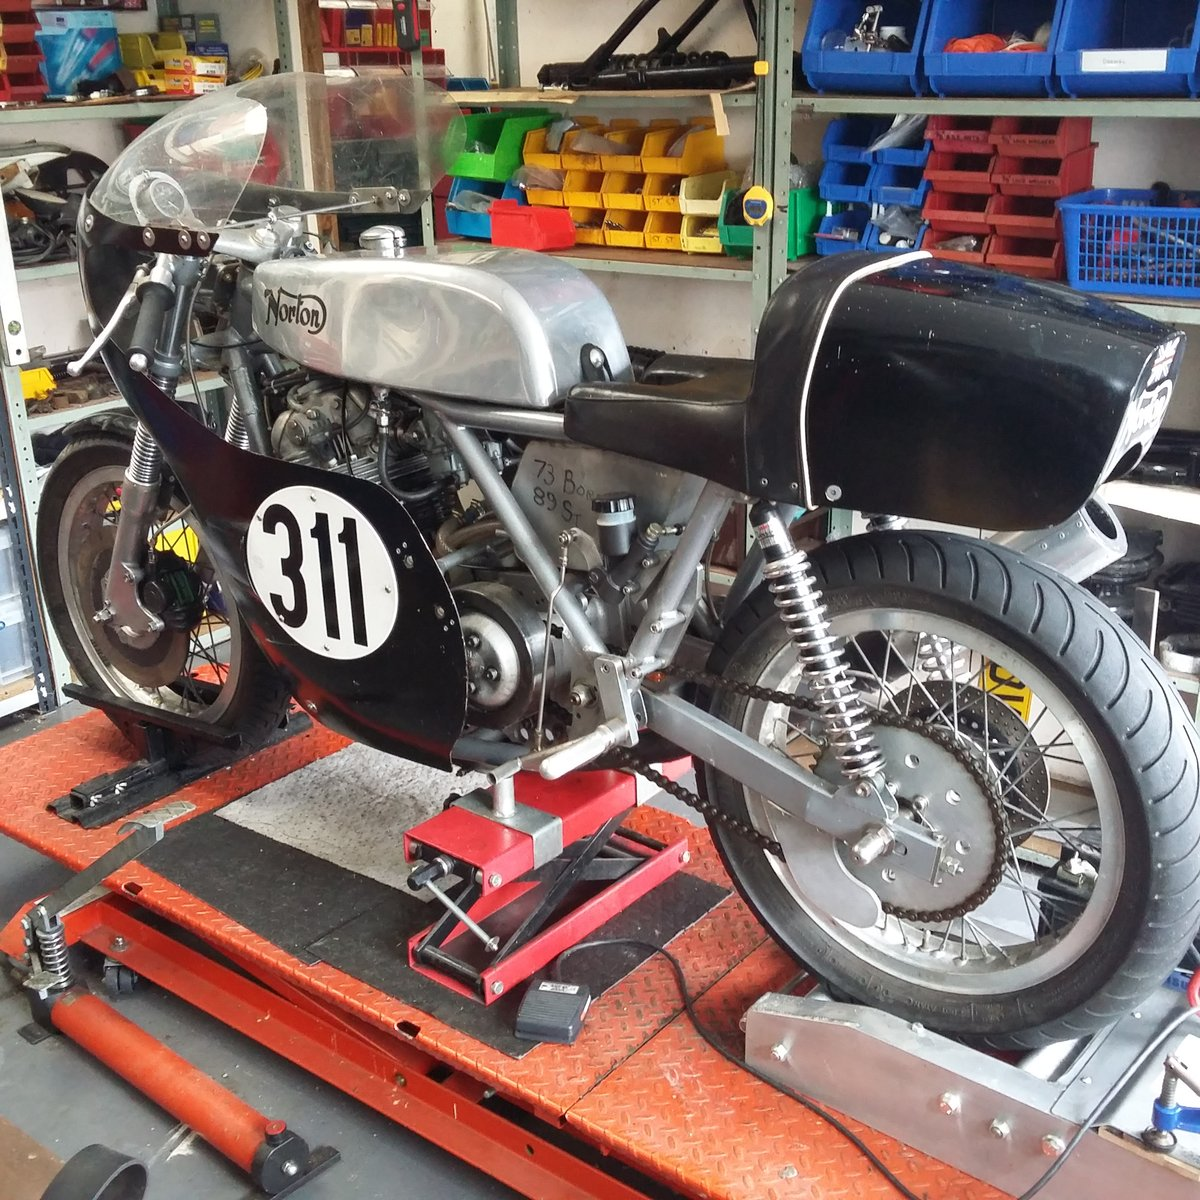 1972 Norton Commando Classic Racer For Sale (picture 1 of 6)